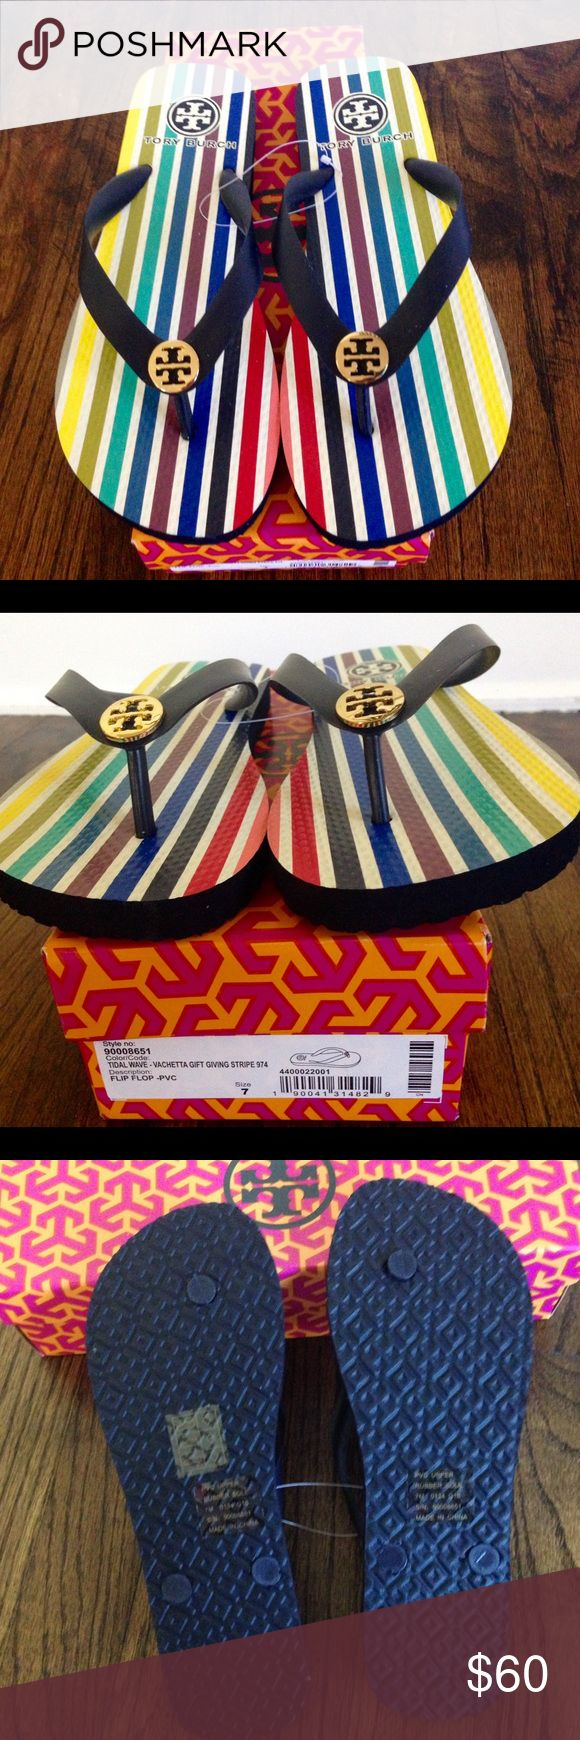 Tory Burch flip flops Brand new multi-colour flips flops in box Tory Burch Shoes Slippers